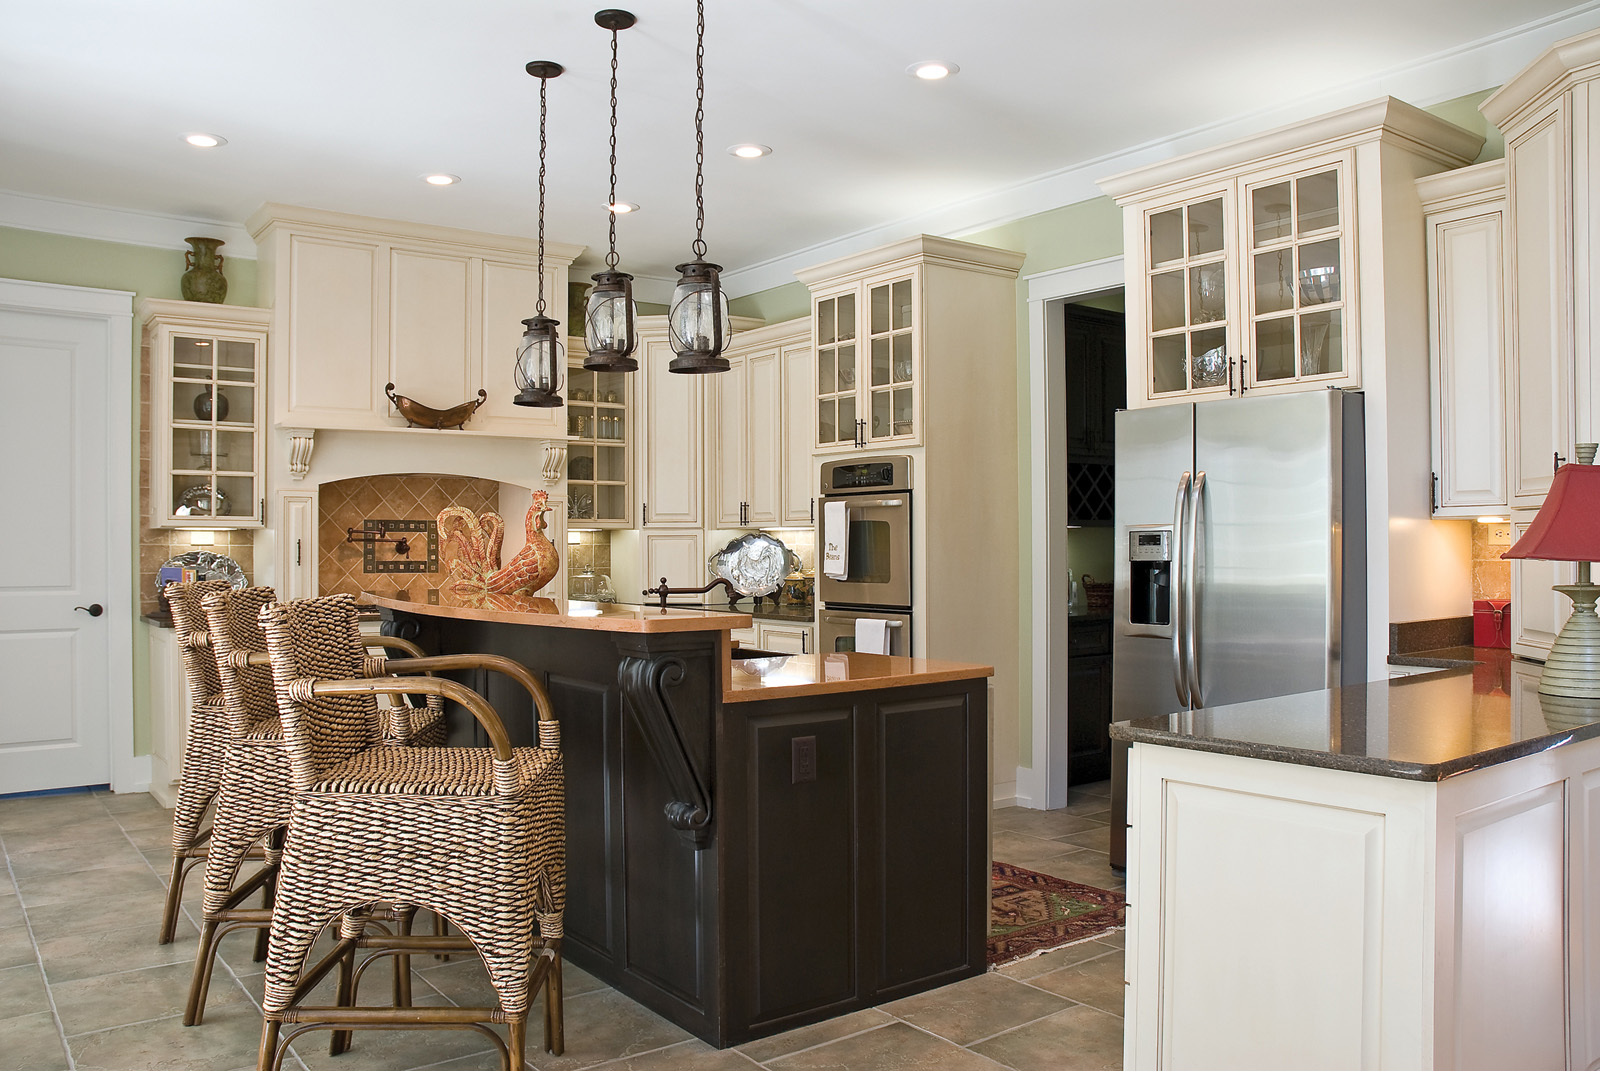 Bertch bath cabinetry reviews cabinets matttroy for Bath remodel boise